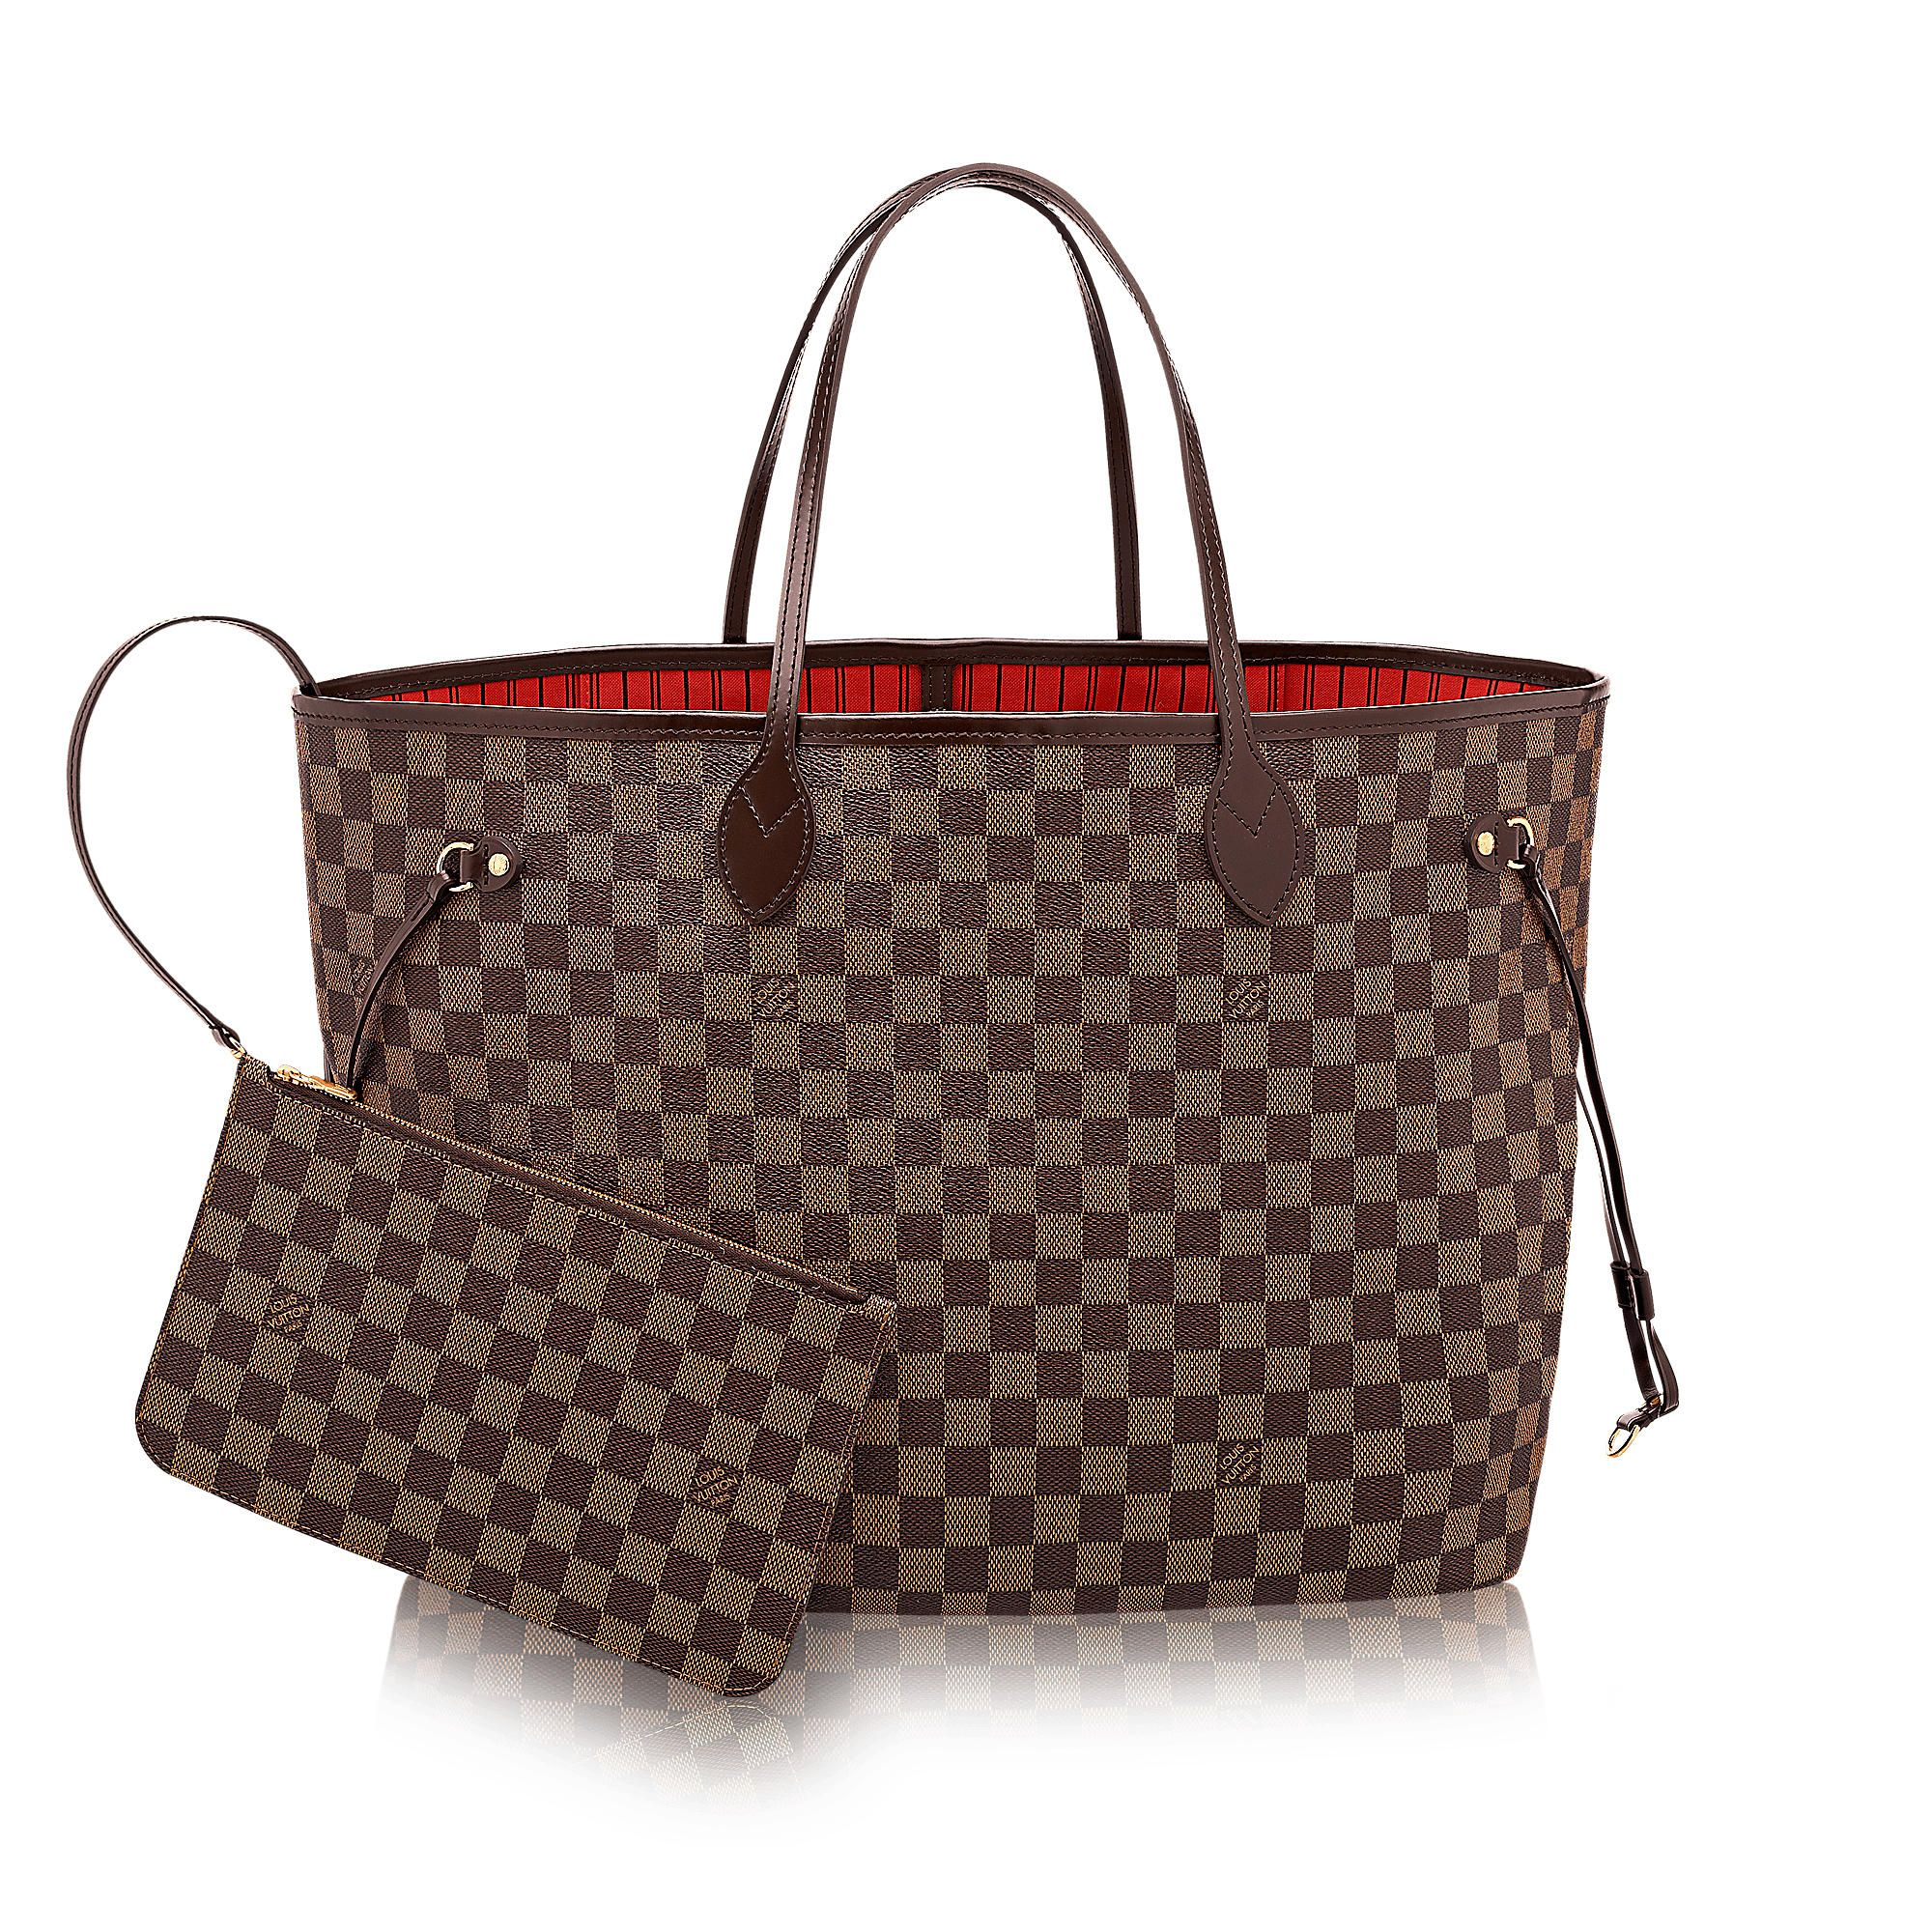 8eff7e87c69f Discover Louis Vuitton Neverfull GM via Louis Vuitton... ONE DAY I WILL  TREAT MYSELF TO THIS BAG